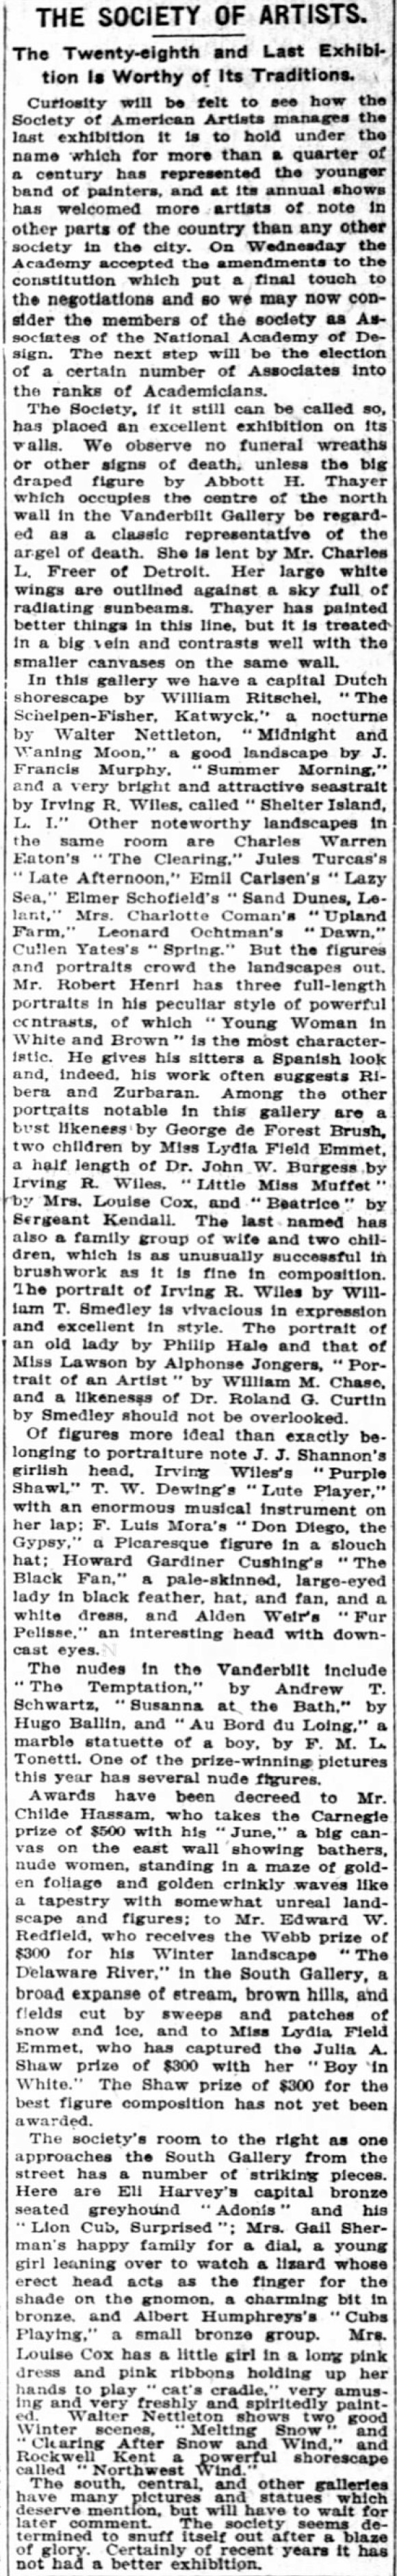 "The New York Times, New York, NY, ""The Society of Artists."", Friday, March 16, 1906, page 3, not illustrated."